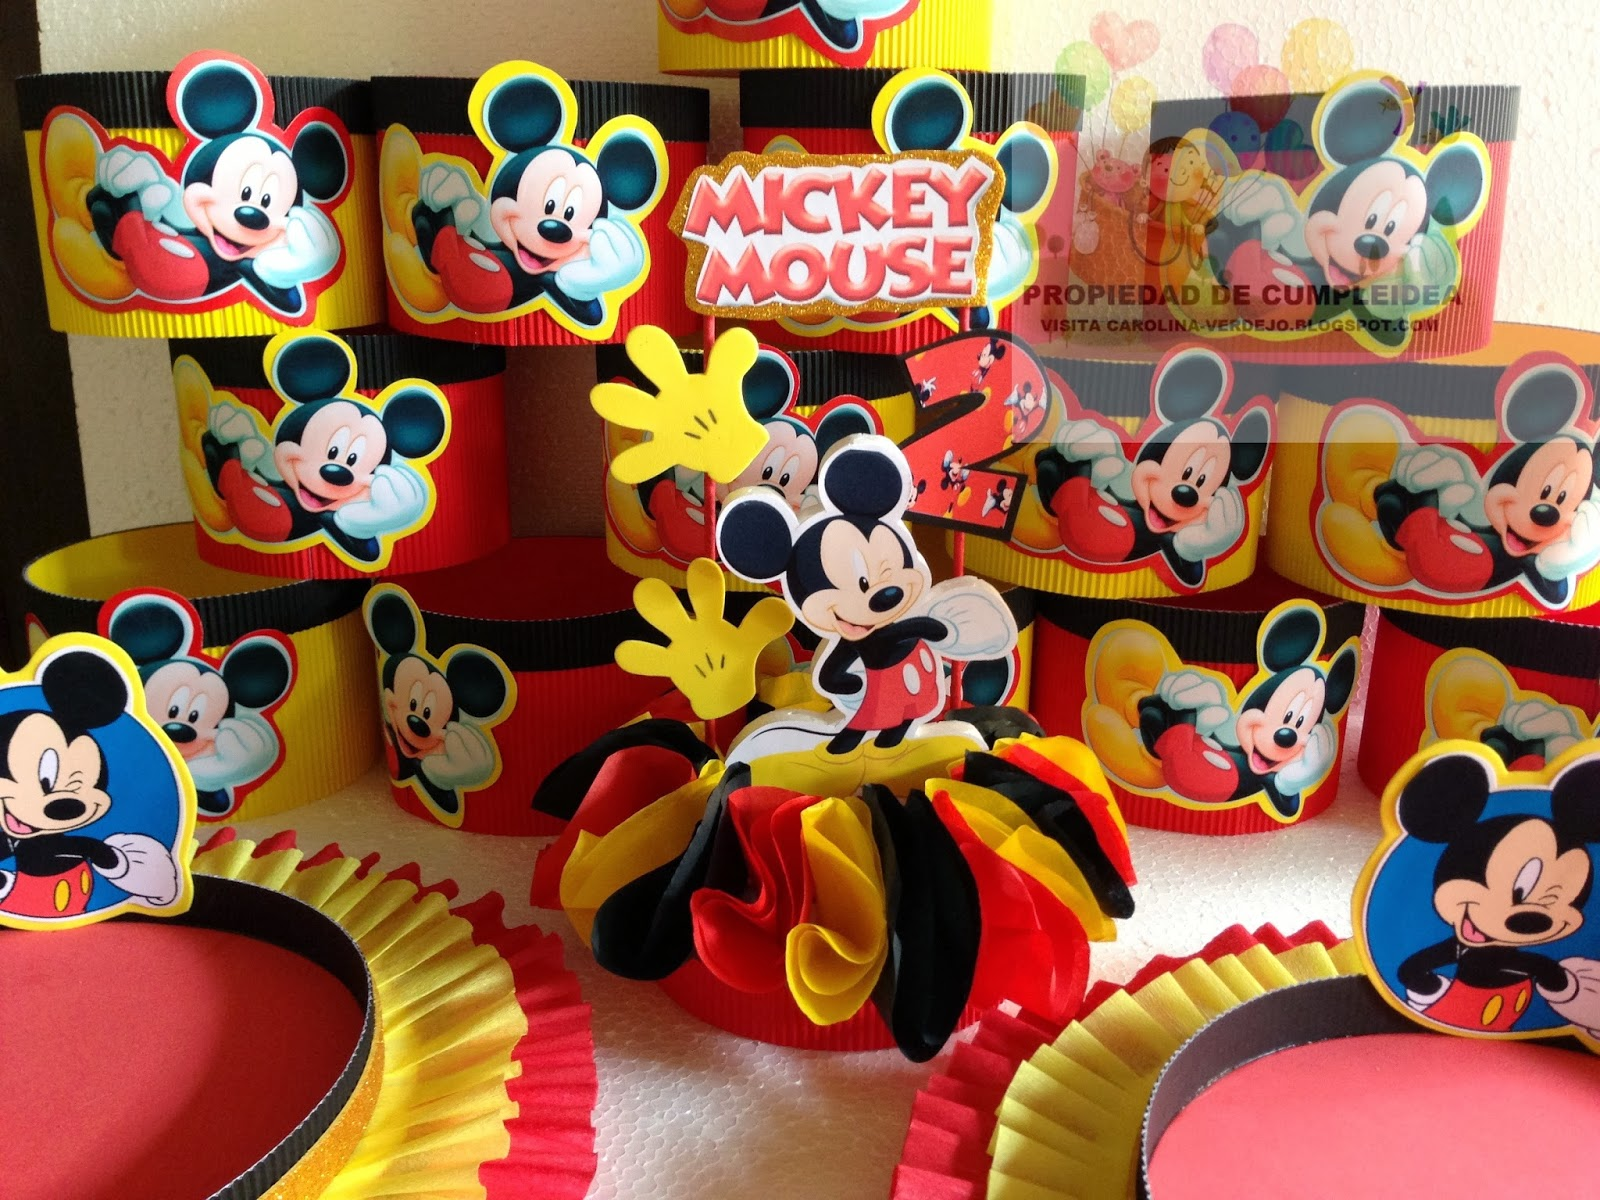 Mickey mouse decoraciones infantiles for Decoracion la casa de mickey mouse